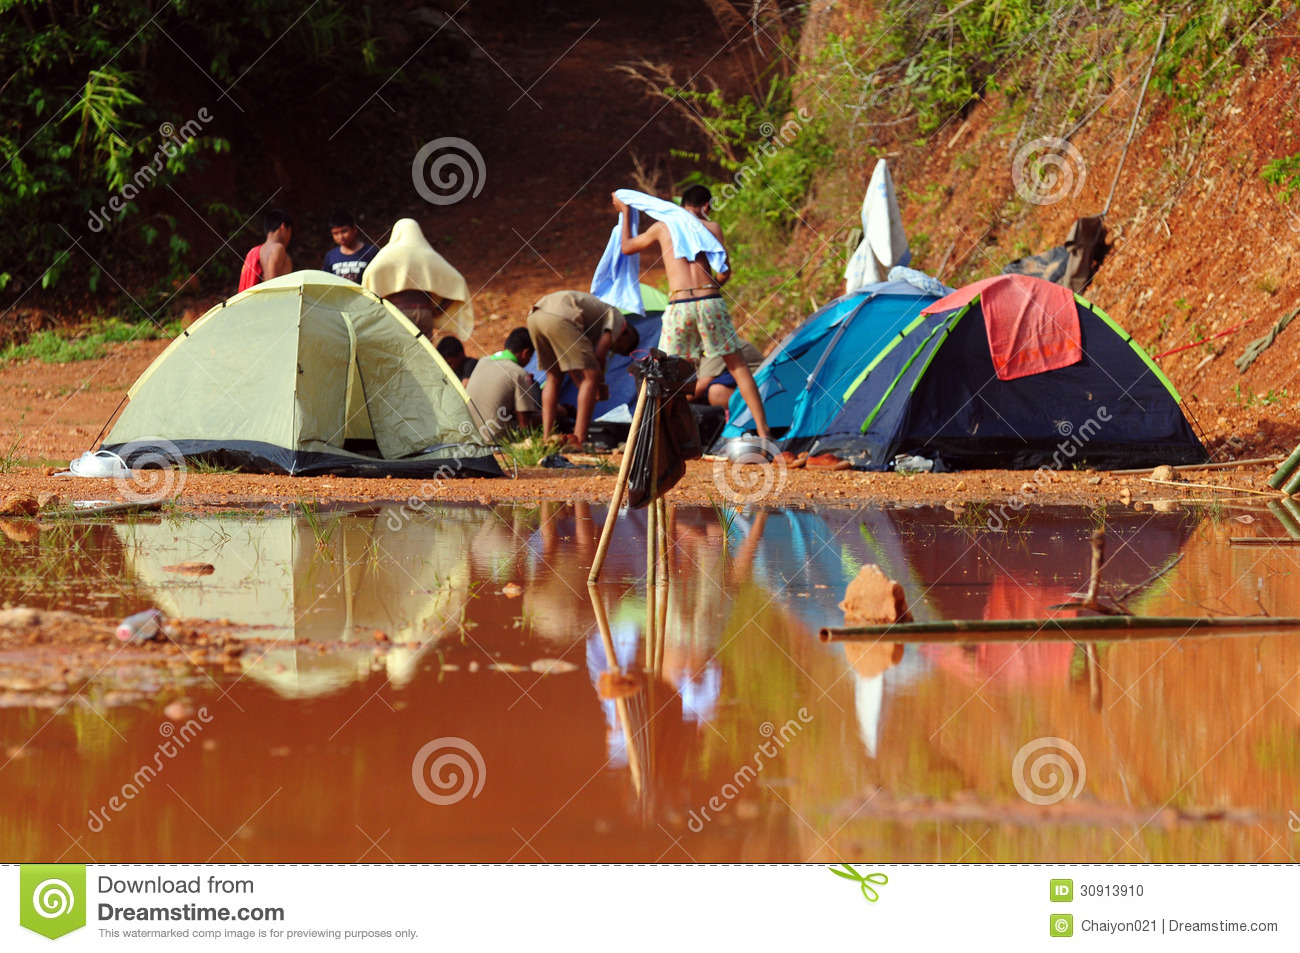 school camping trip essay Class trips are a more visual and hands-on way for a go on trips and that they just go to get out of school and to hang out during or after the trip.